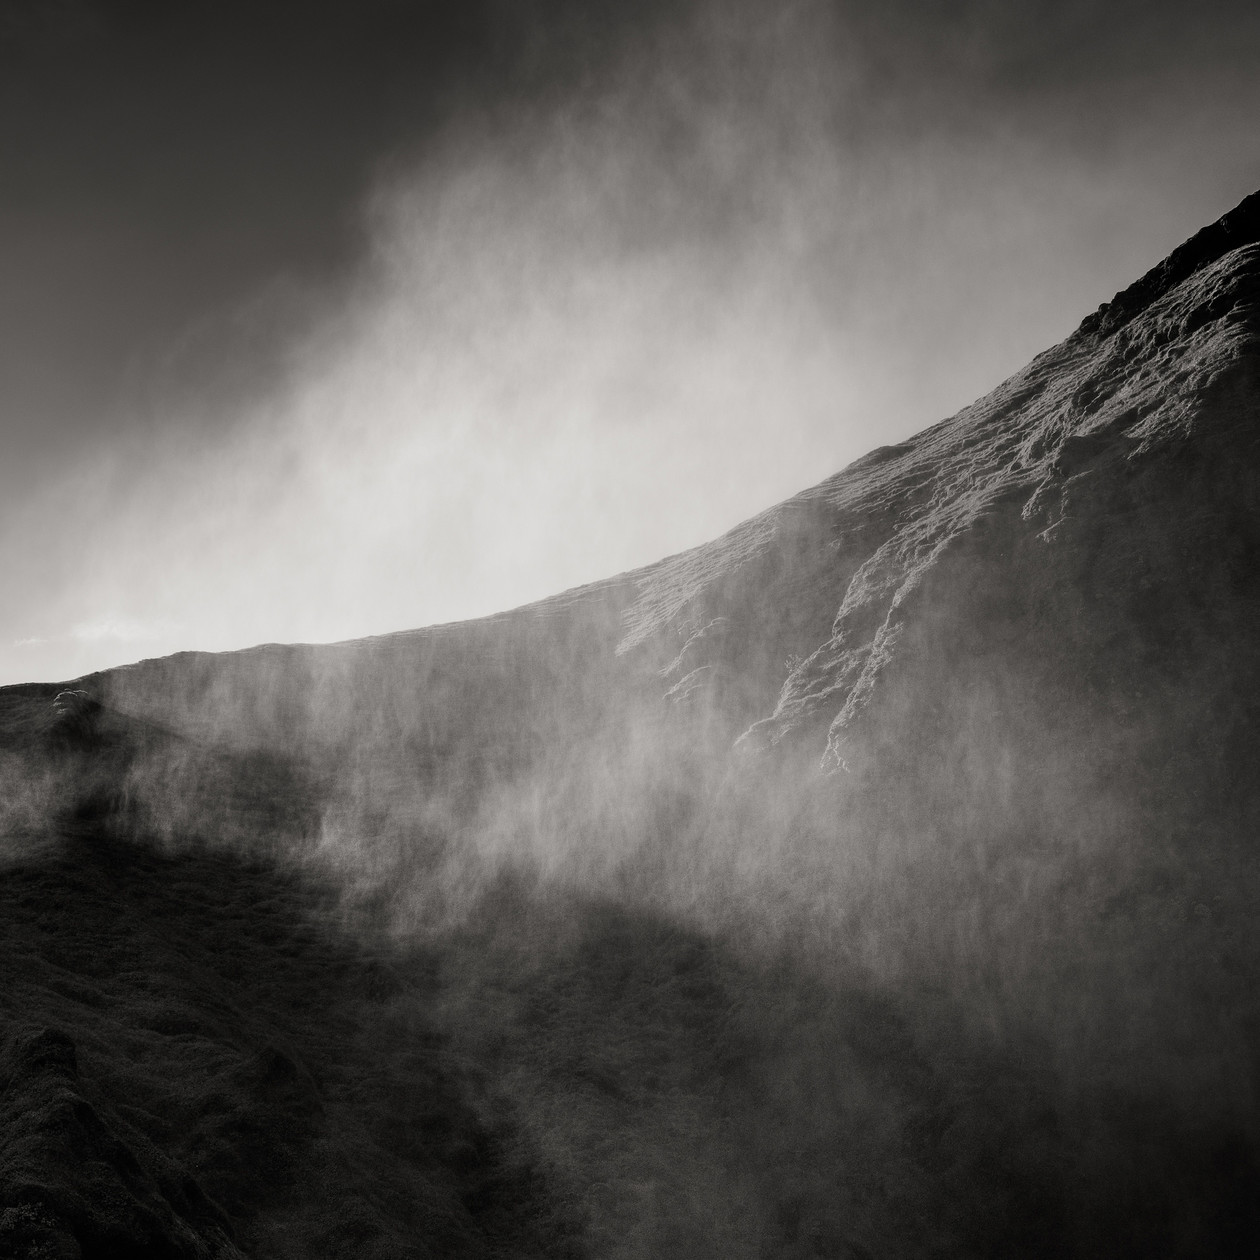 Lifting Mist, Iceland (2017) by Jeffrey Conley